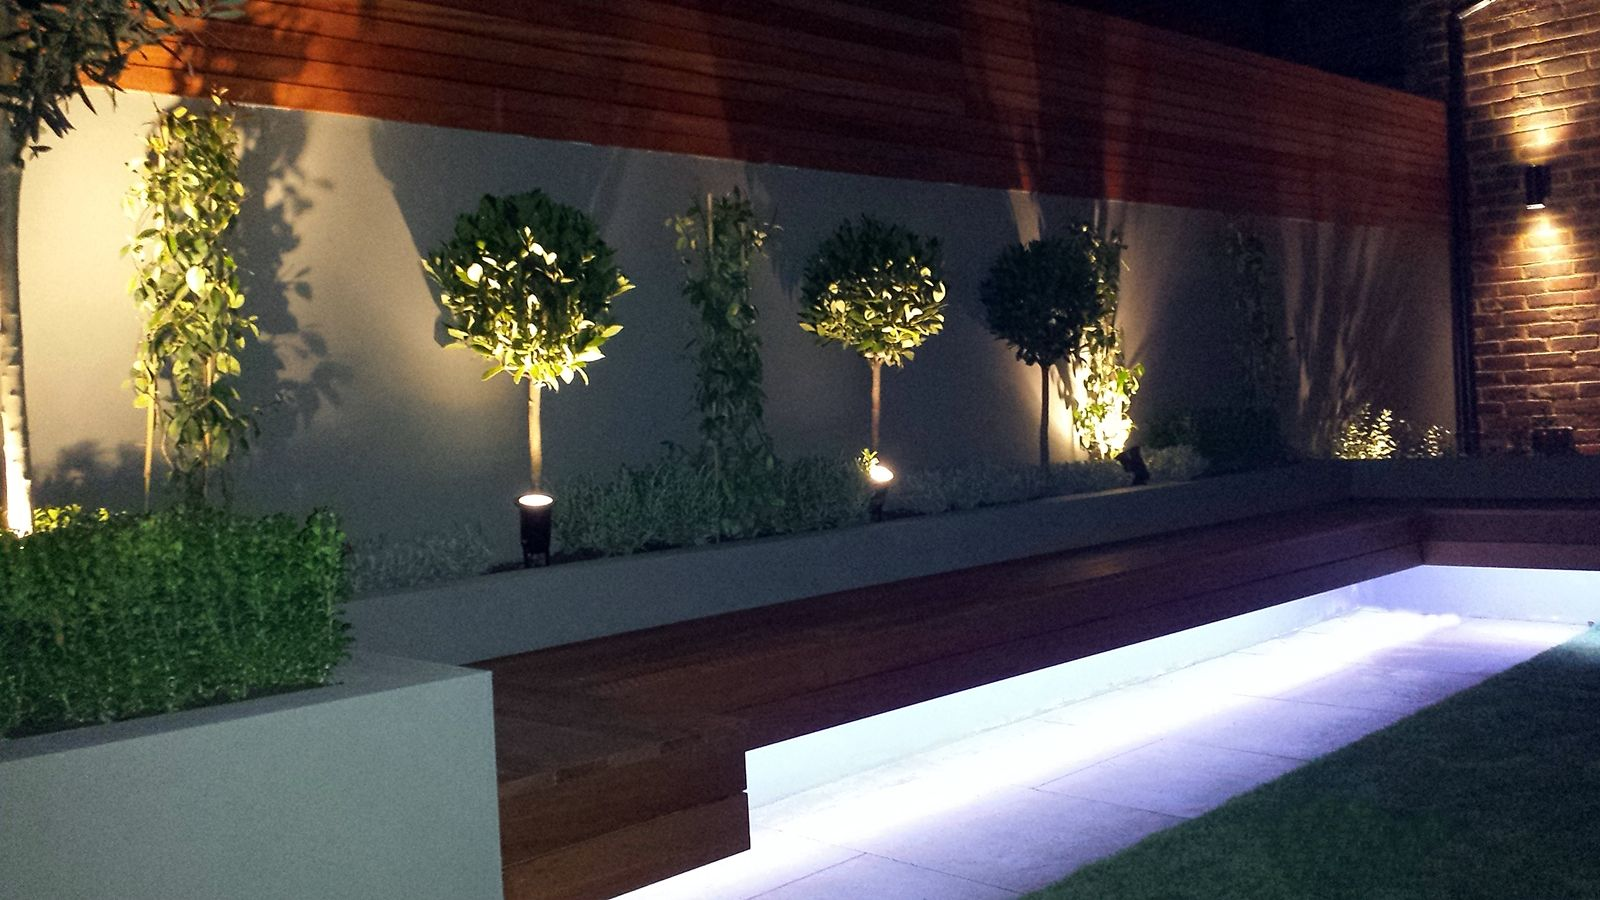 Modern Garden Design Ideas Great Lighting Fireplace Hardwood Screen Plastered Rendered Walls Cl Garden Lighting Design Modern Garden Design Small Garden Design